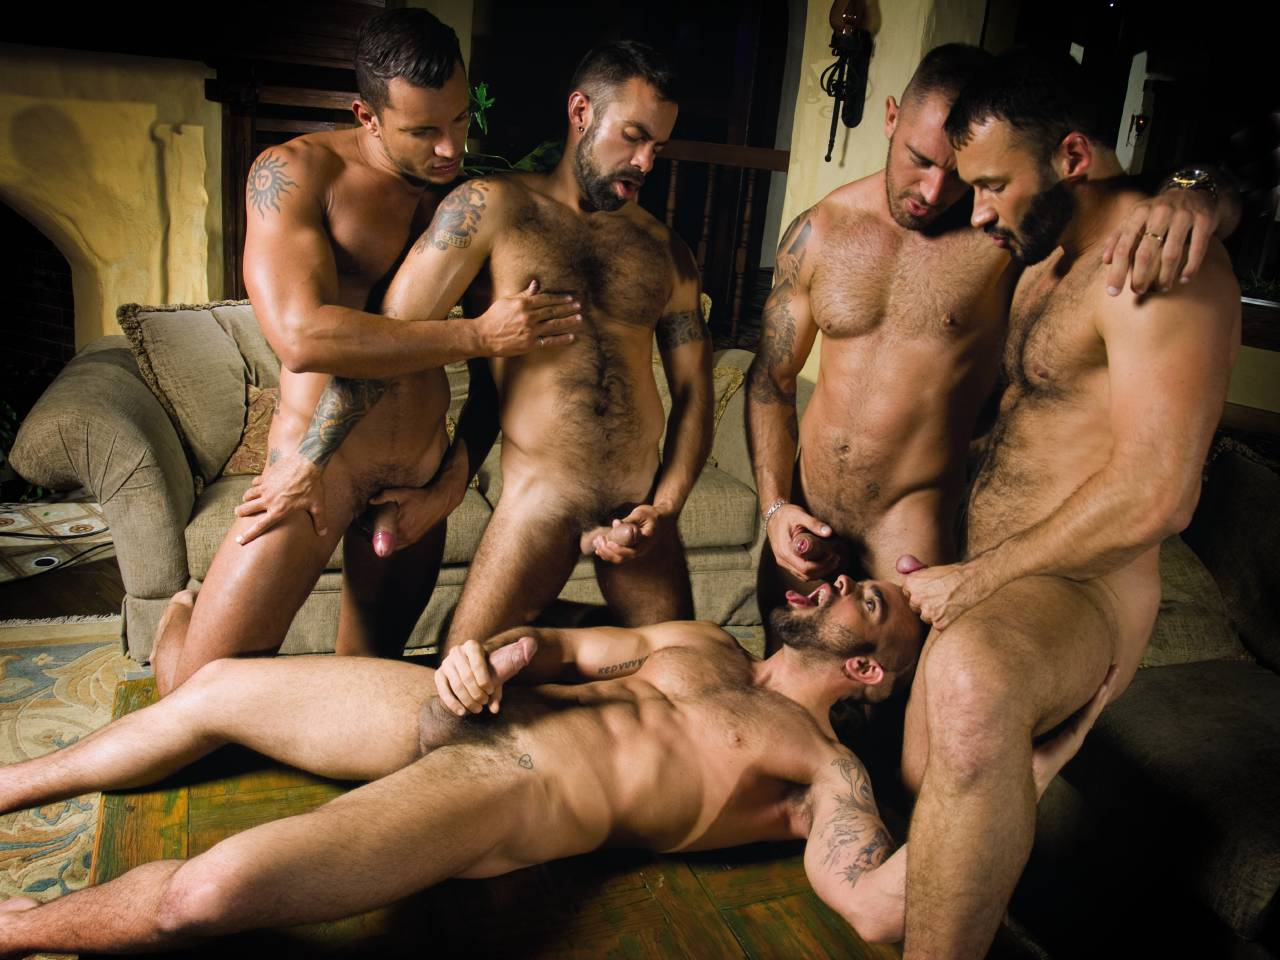 from Austin hairy gay orgy